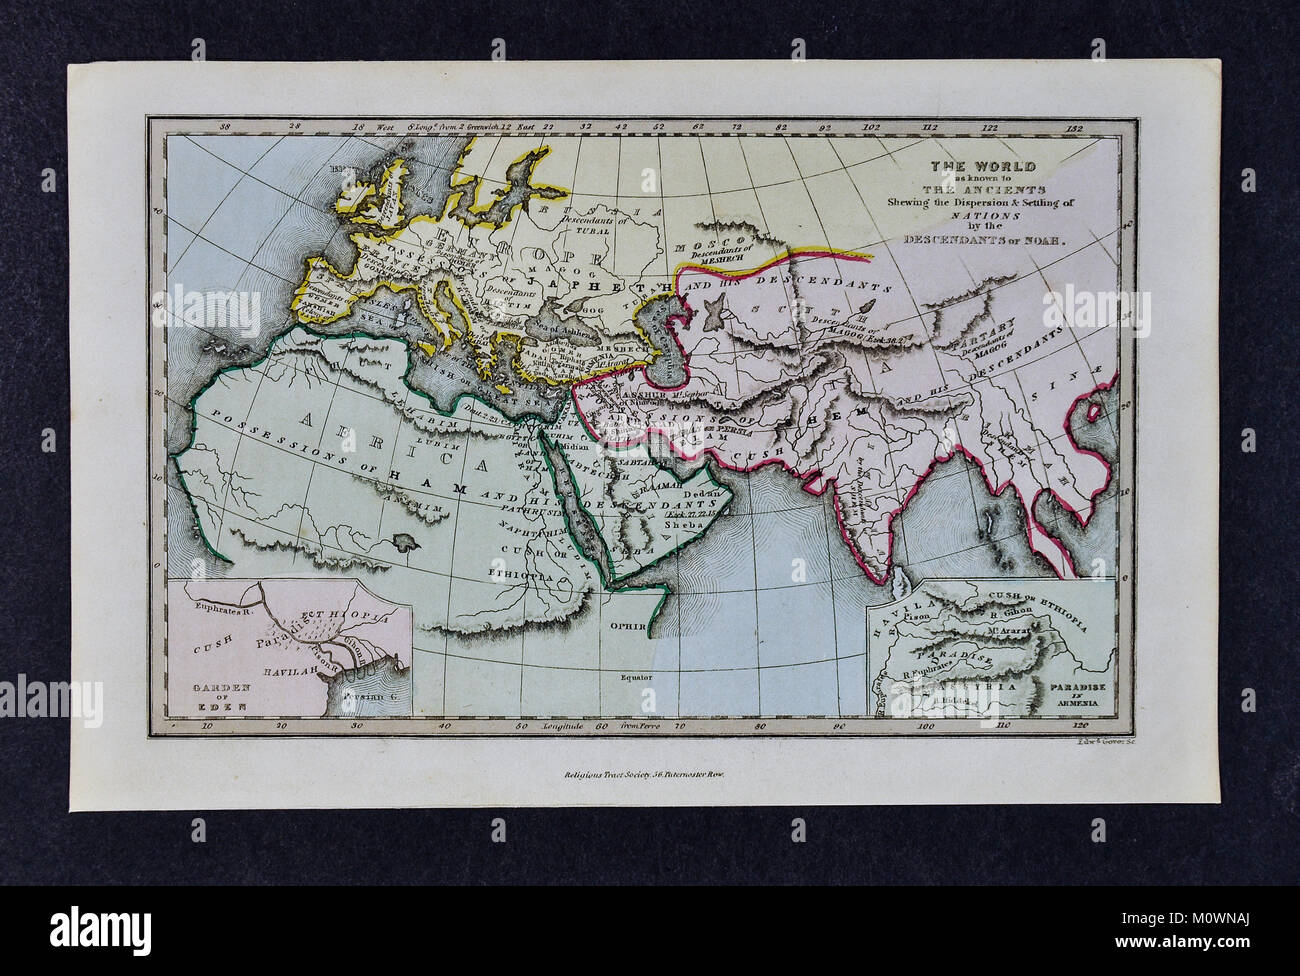 1799 Bible Tract Society Map - The World as Known to the Ancients Showing the Dispersion and Settling of Nations - Stock Image